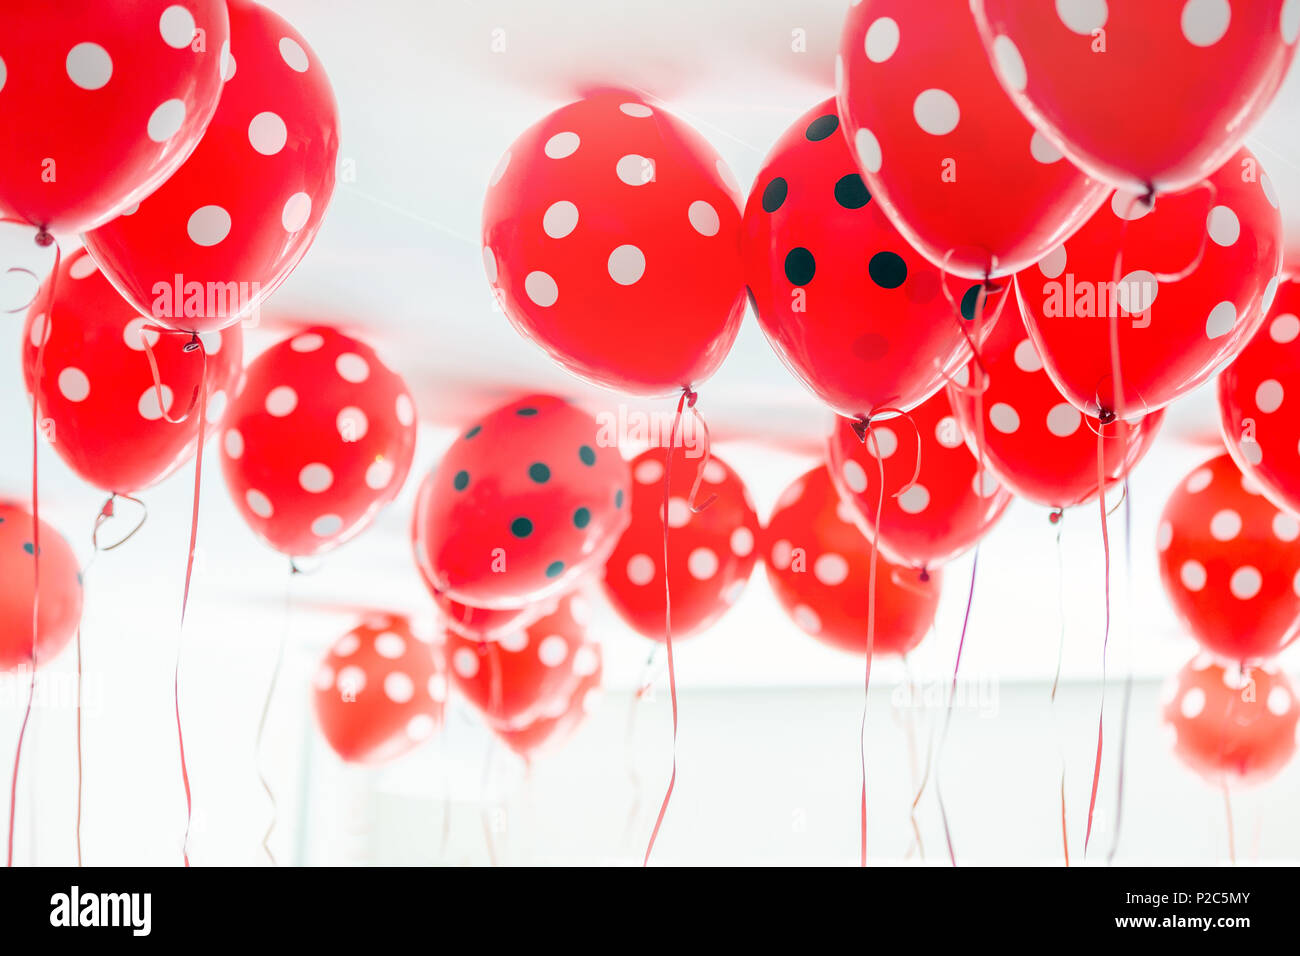 Beautiful red dotted balloons floating at white ceiling. Wedding or children birthday party decoration interior. - Stock Image